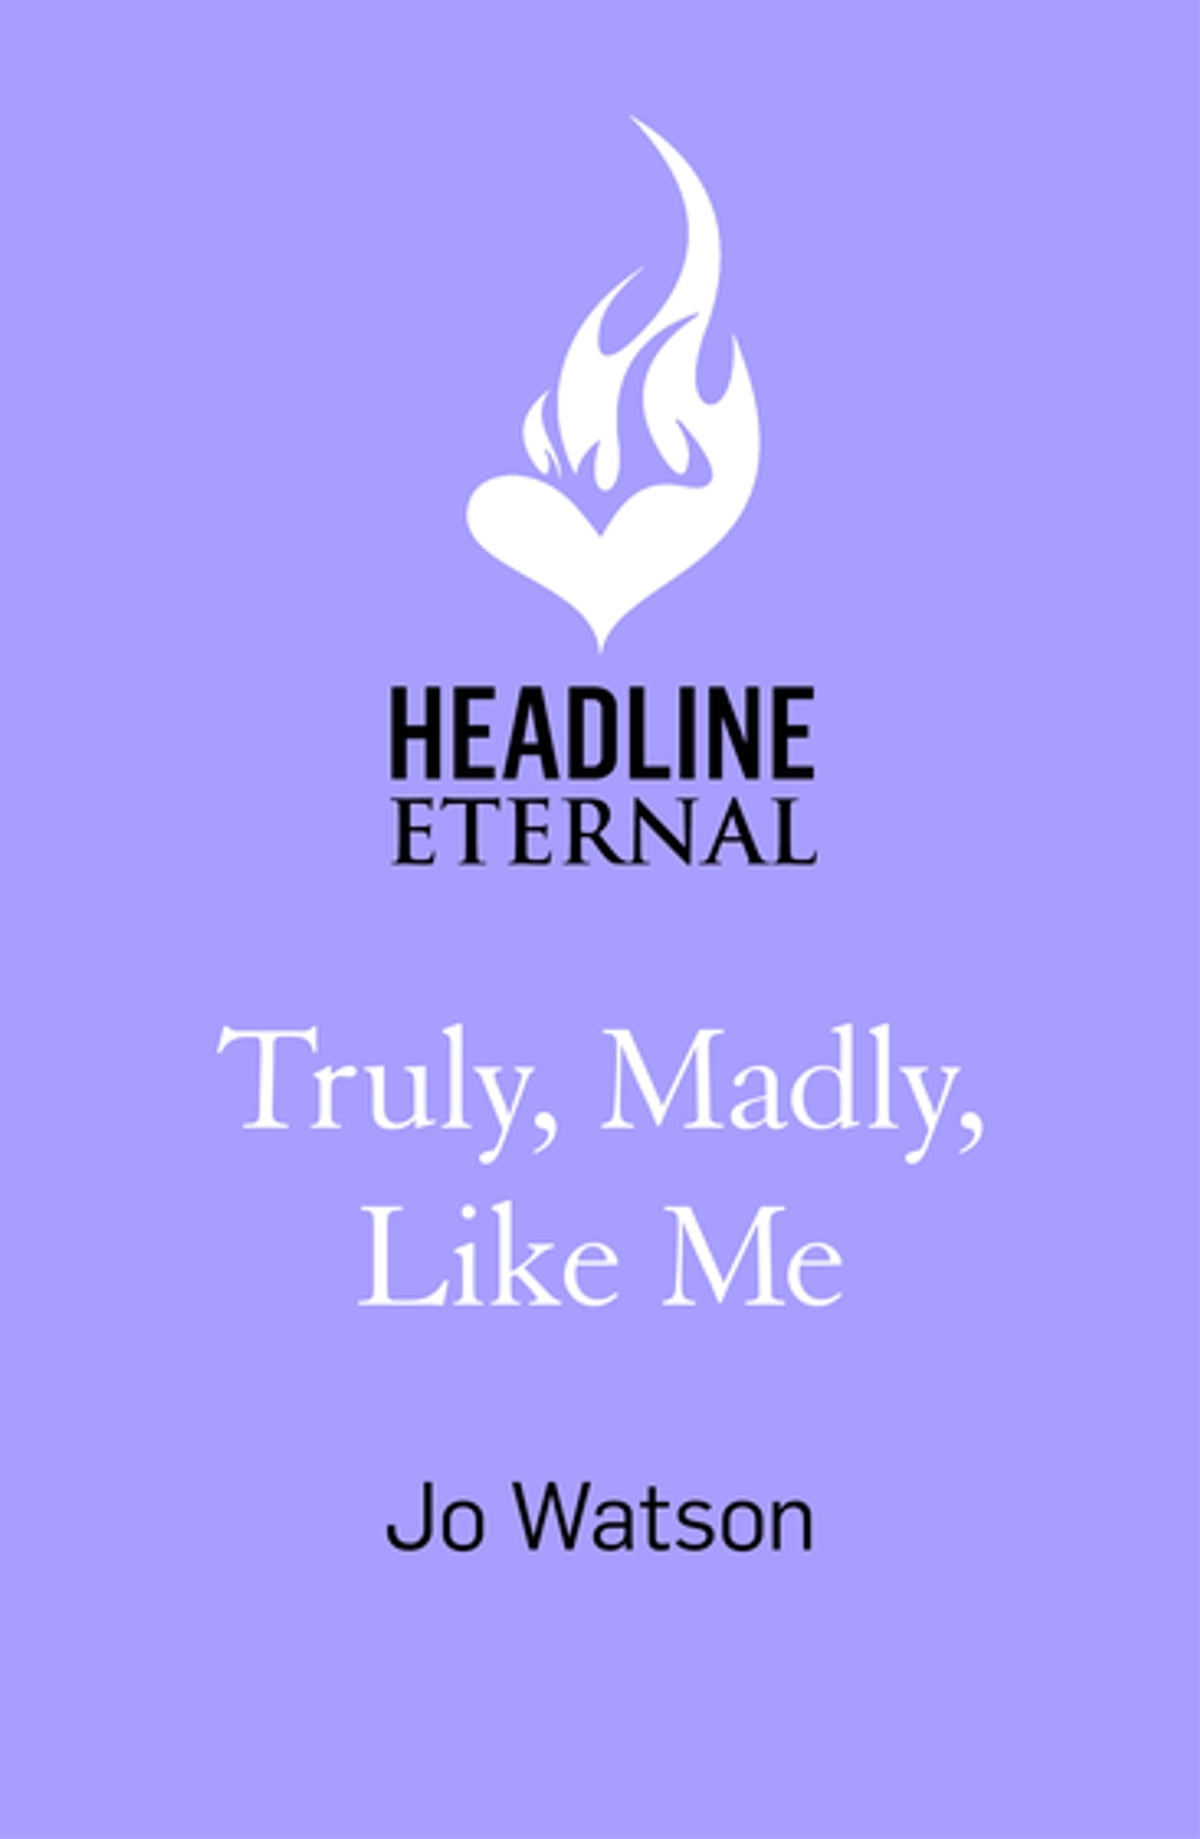 Truly, Madly, Like Me eBook by Jo Watson - 9781472265555 | Rakuten ...